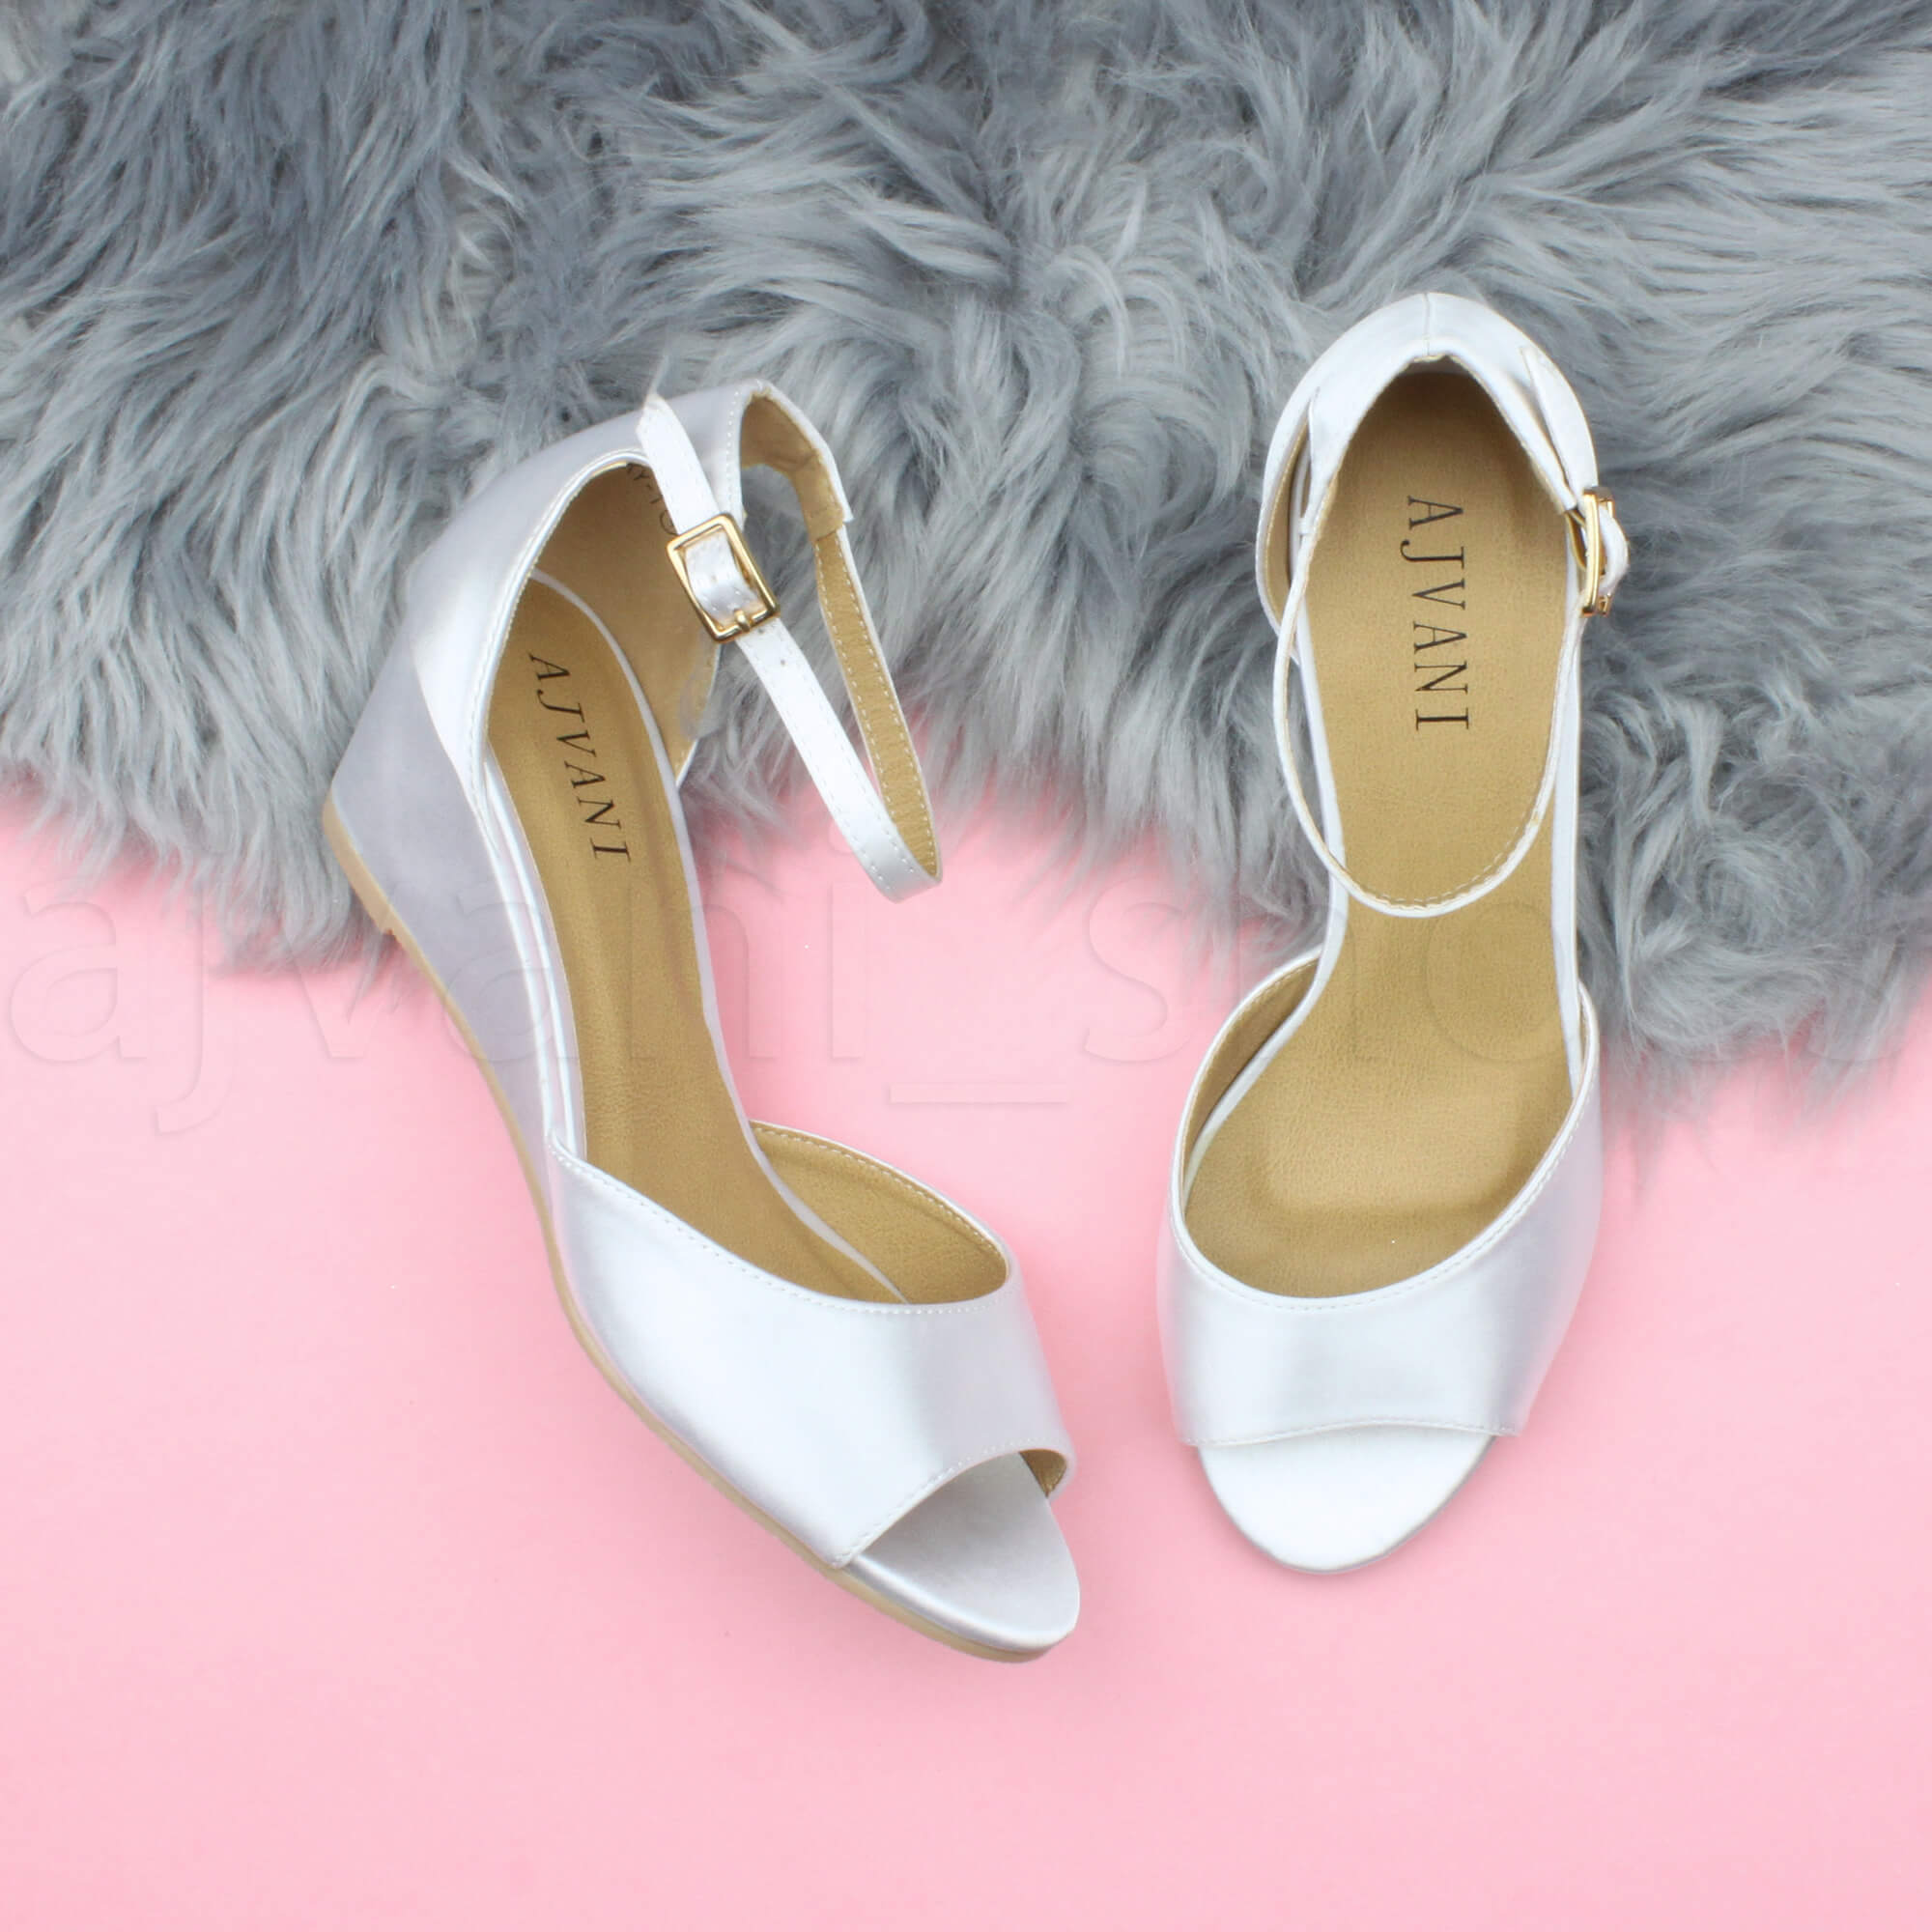 WOMENS-LADIES-LOW-MID-WEDGE-HEEL-ANKLE-STRAP-SMART-CASUAL-EVENING-SANDALS-SIZE thumbnail 173